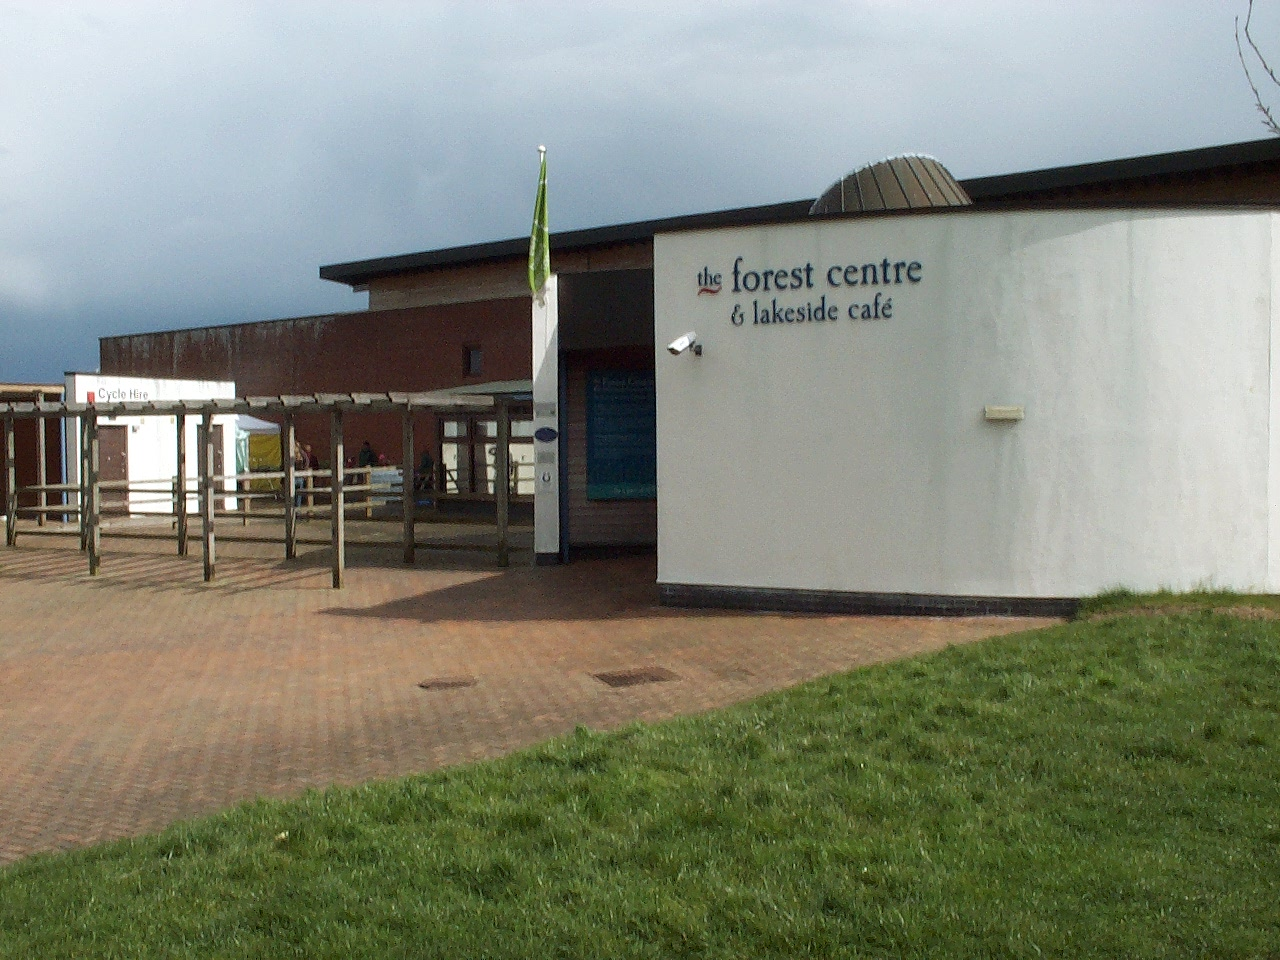 The Marston Vale Forest Centre. This is the vi...